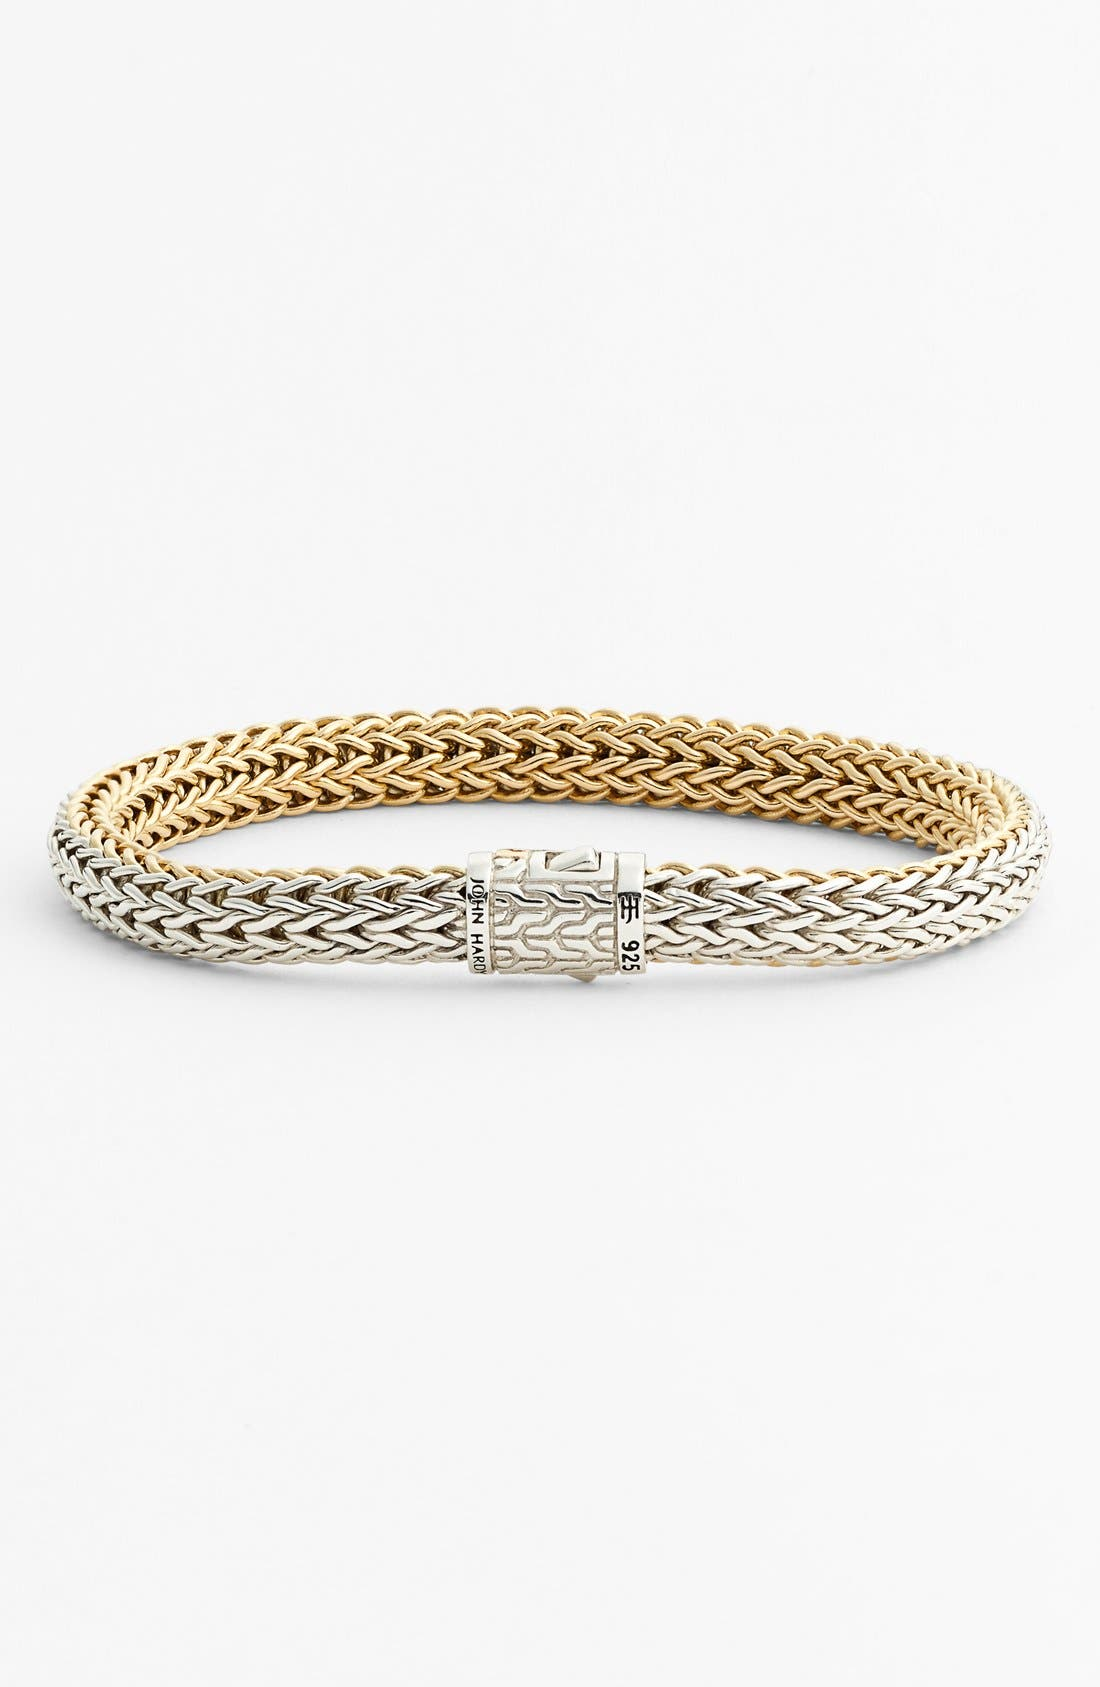 Alternate Image 1 Selected - John Hardy 'Classic Chain' Small Reversible Bracelet